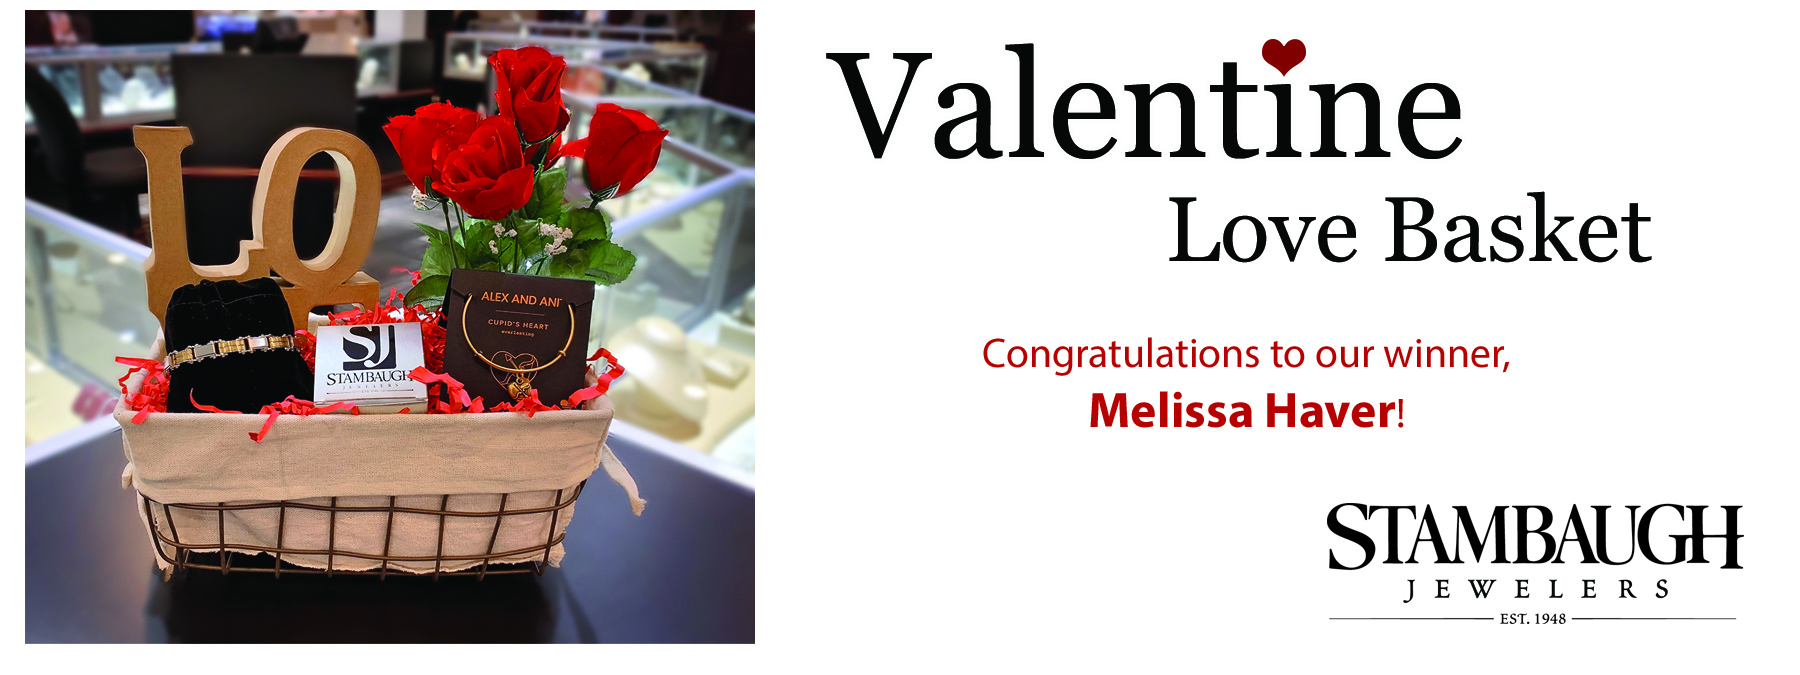 Valentine Love Basket Winner